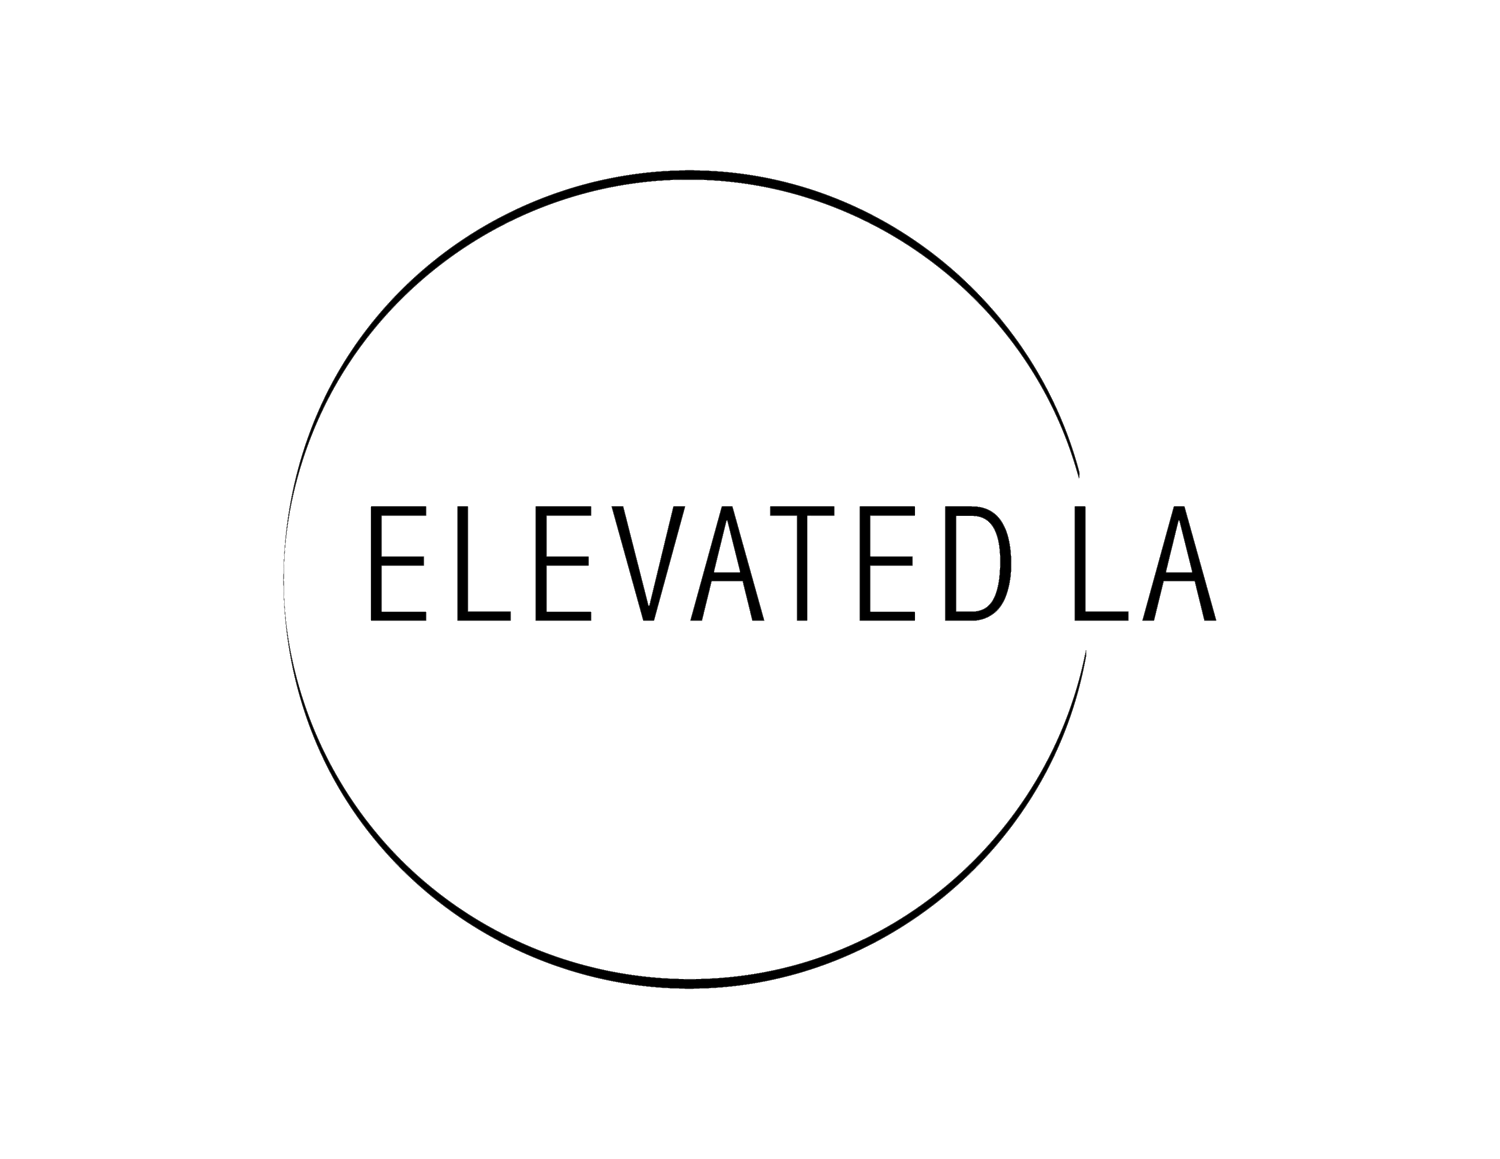 Elevated - LA Commercial